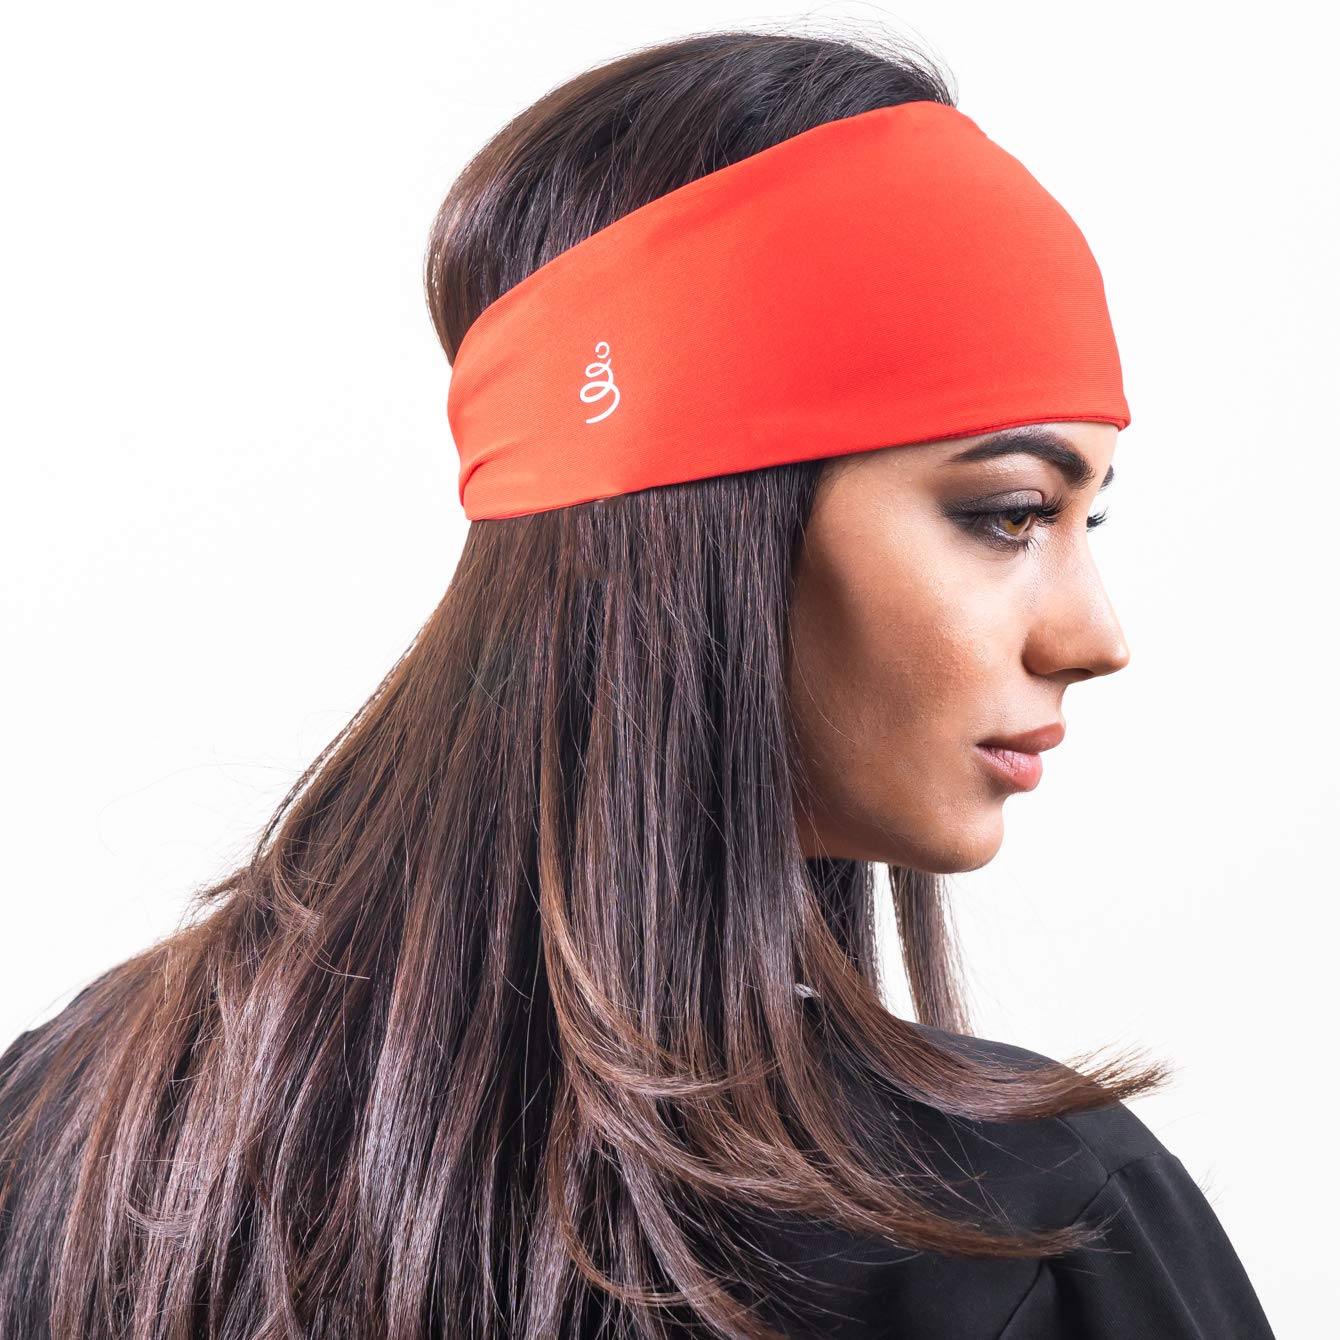 Zen Mind | Premium Sports Headbands for Women | Exercise Fitness Yoga Headband | Non-Slip Sweatband for Workout Running | Stretchy Elastic and Ultimate Performance Moisture Wicking